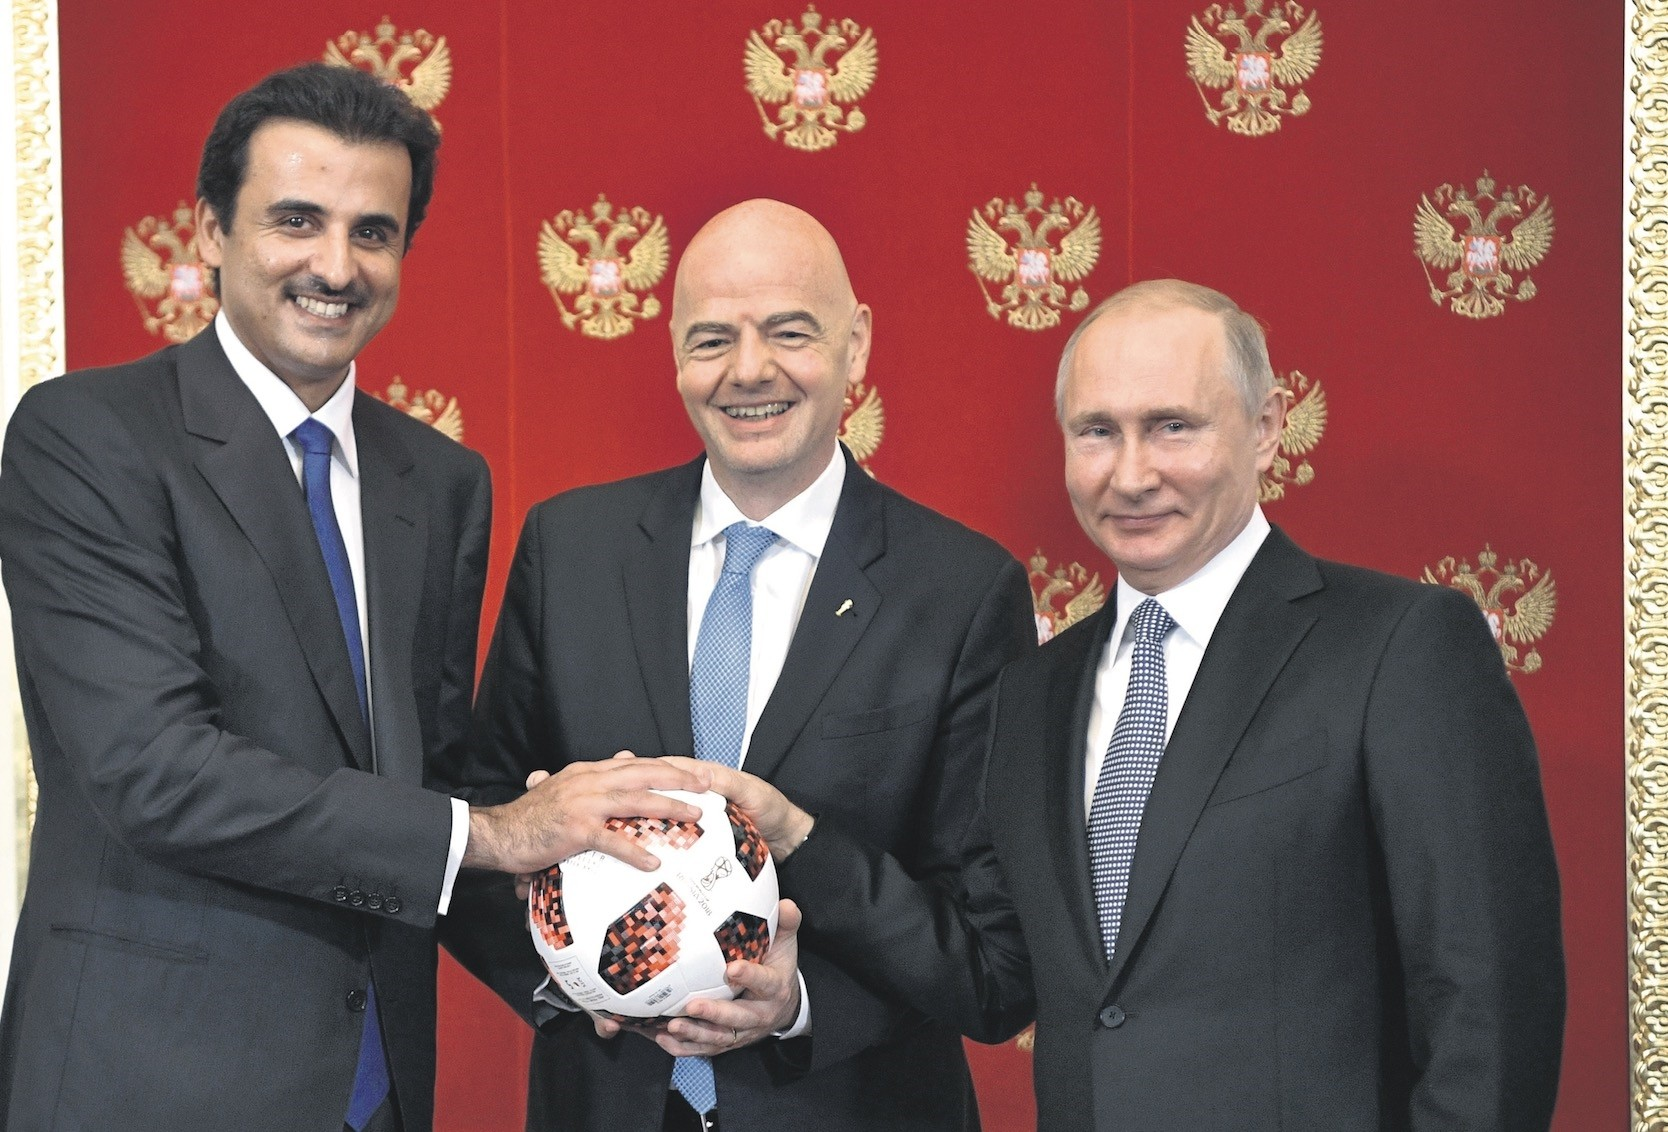 The Emir of Qatar Sheikh Tamim bin Hamad al-Thani (L), FIFA President Gianni Infantino and Russian President Vladimir Putin pose for a photo during their meeting in the Kremlin in Moscow, July 15.